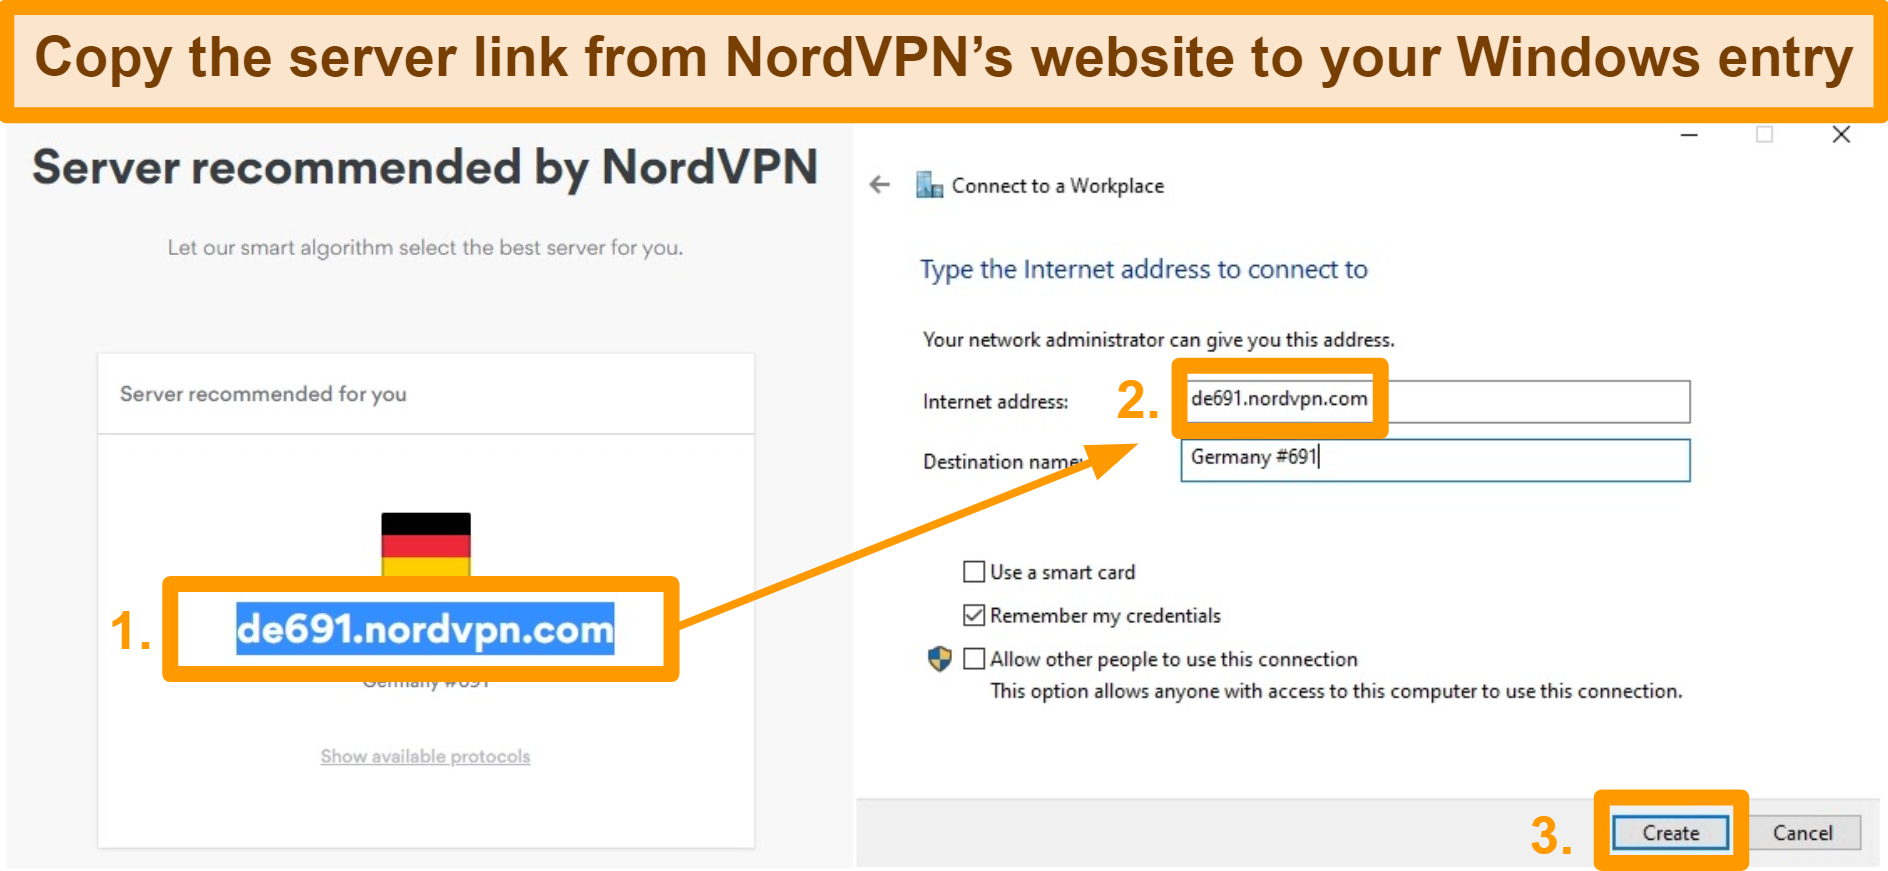 Screenshot of copying a suggested server URL from NordVPN's website into the Windows